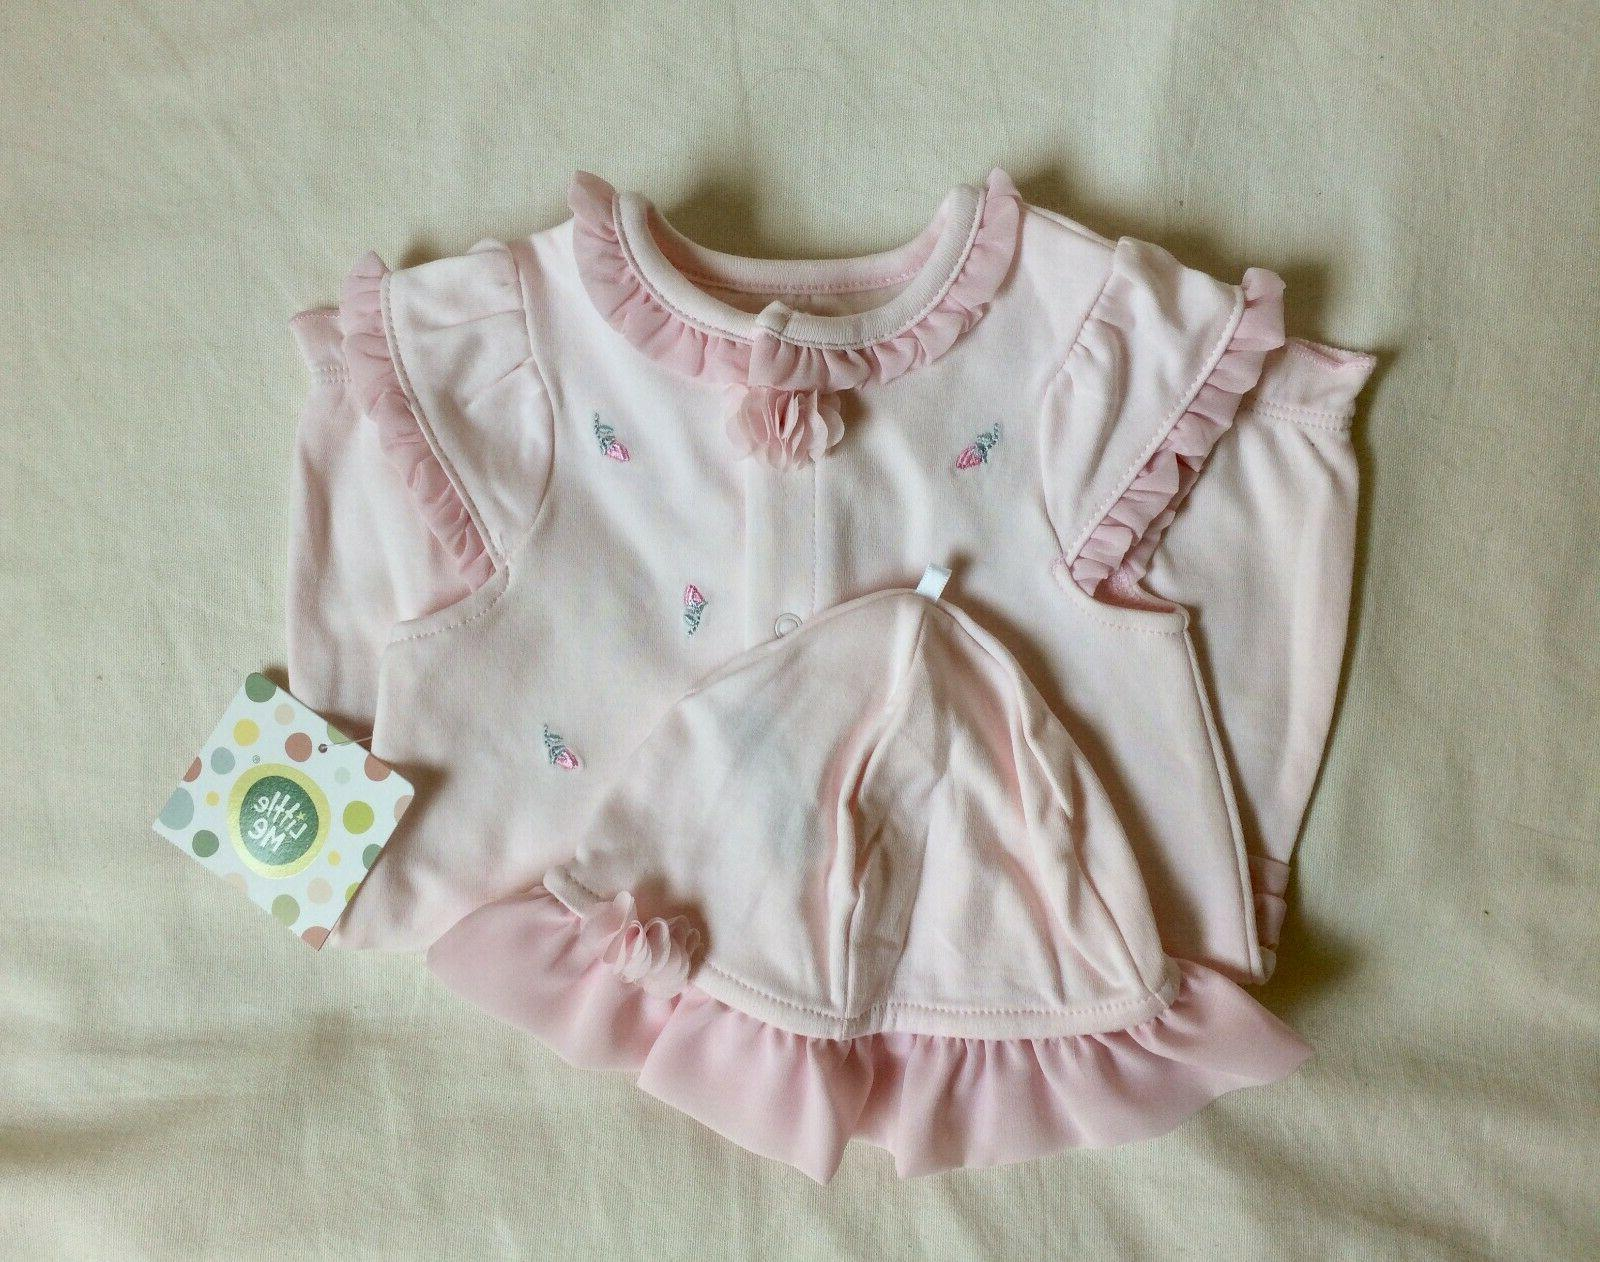 nwt nordstrom 9m pink baby girl romper